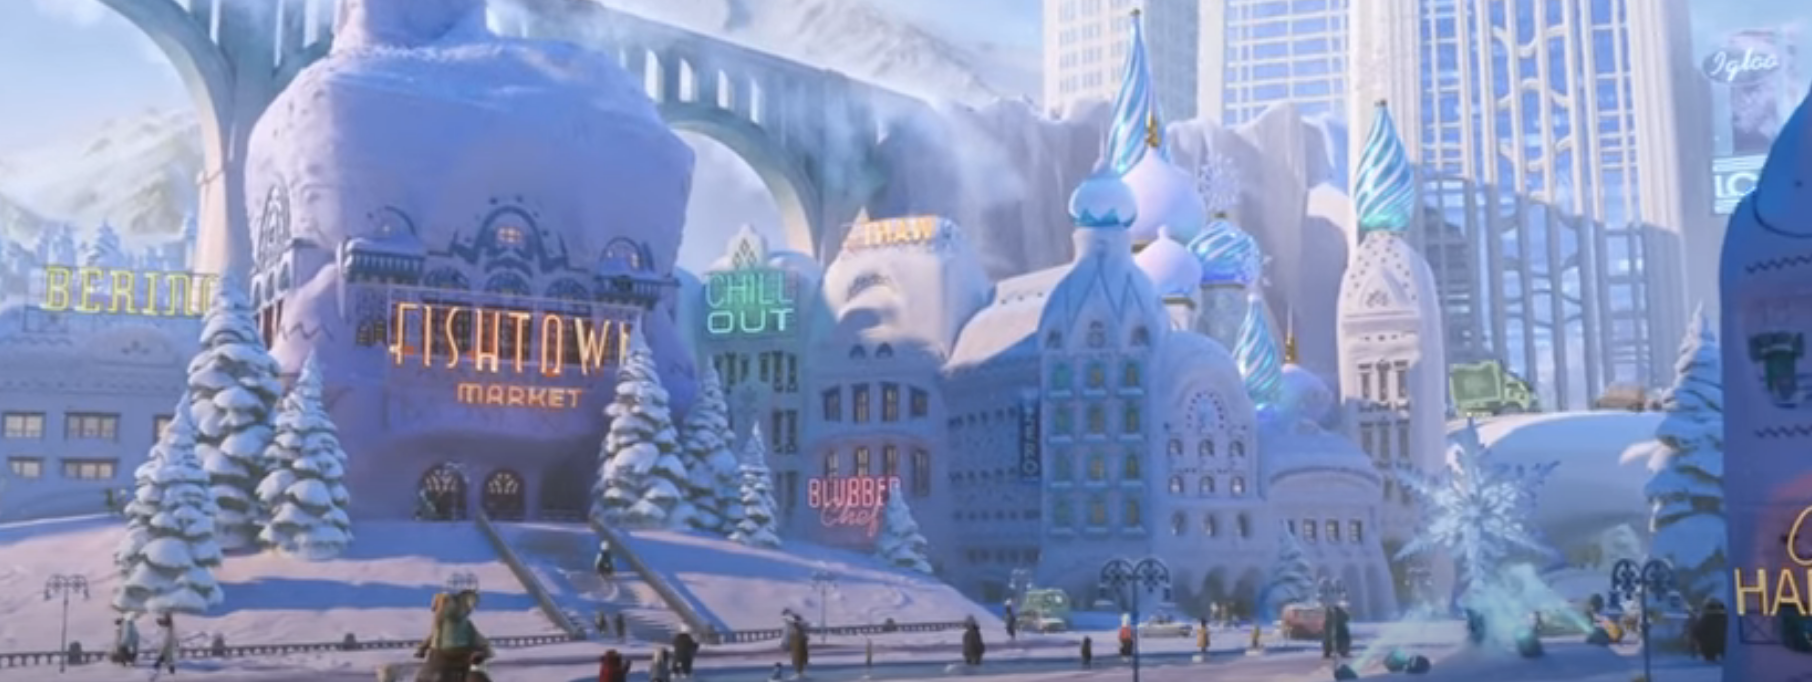 The Zootopia train going through the ice district